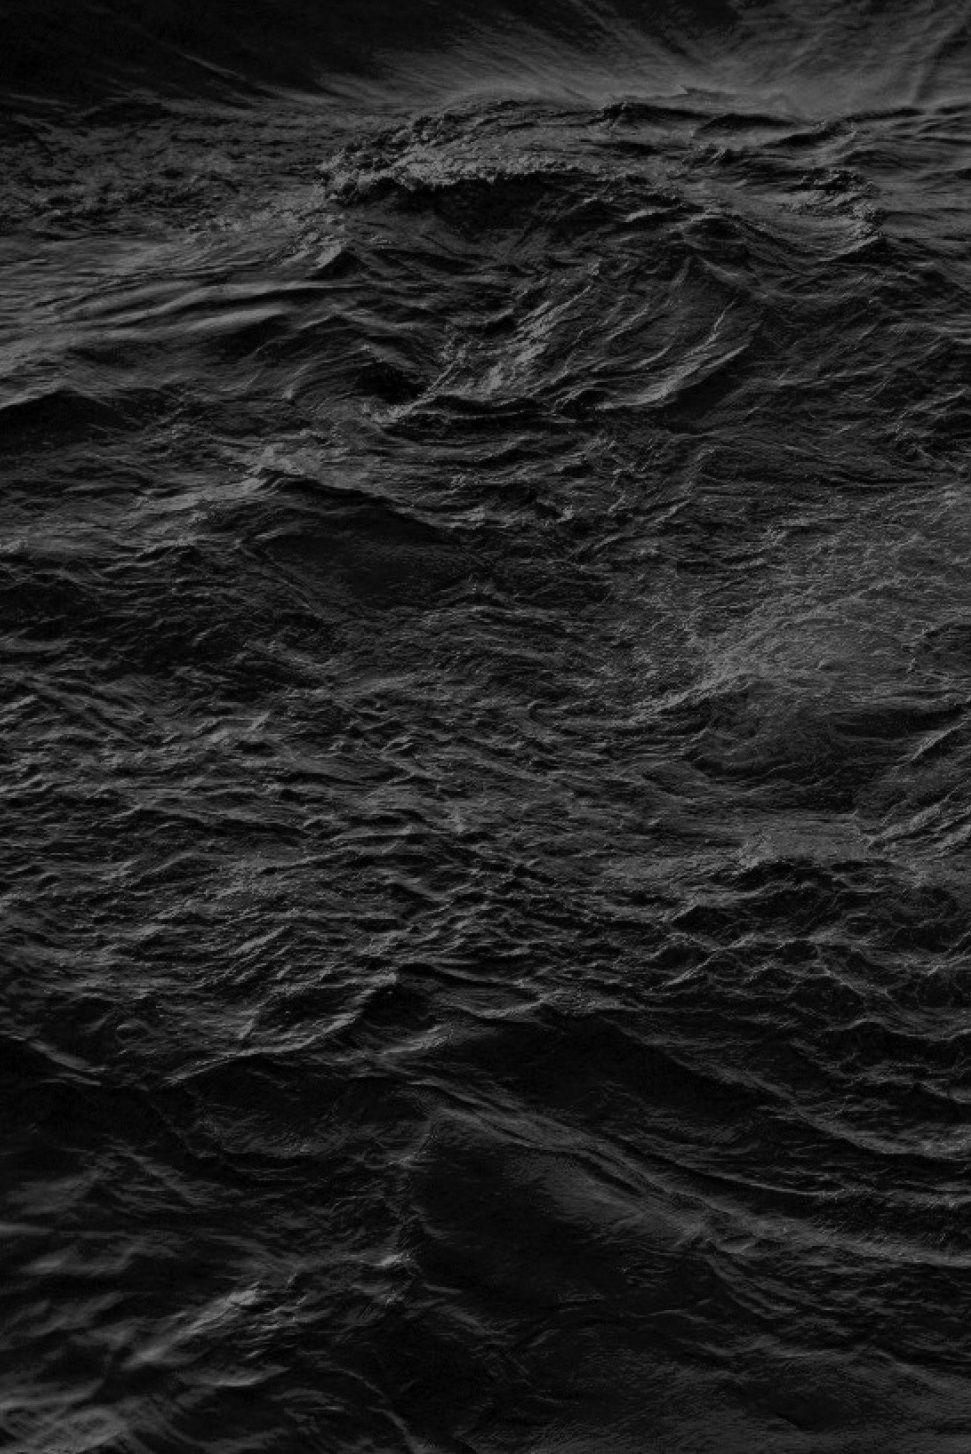 Black ocean water waves black texture inspiration